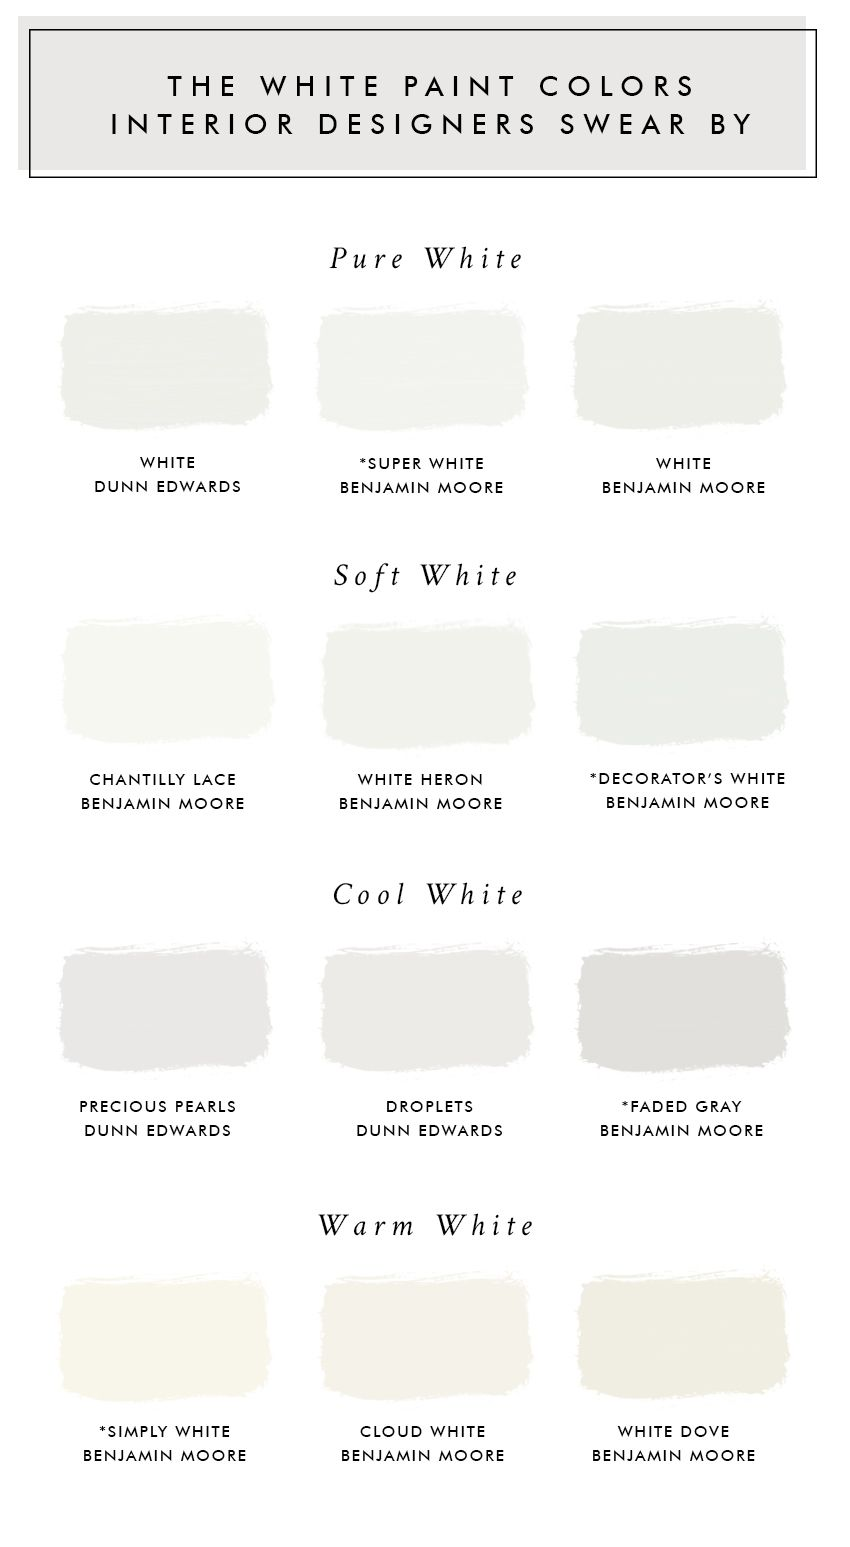 The White Paint Colors Interior Designers Swear By Laurel Harrison White Paint Colors Paint Colors For Home Colorful Interiors